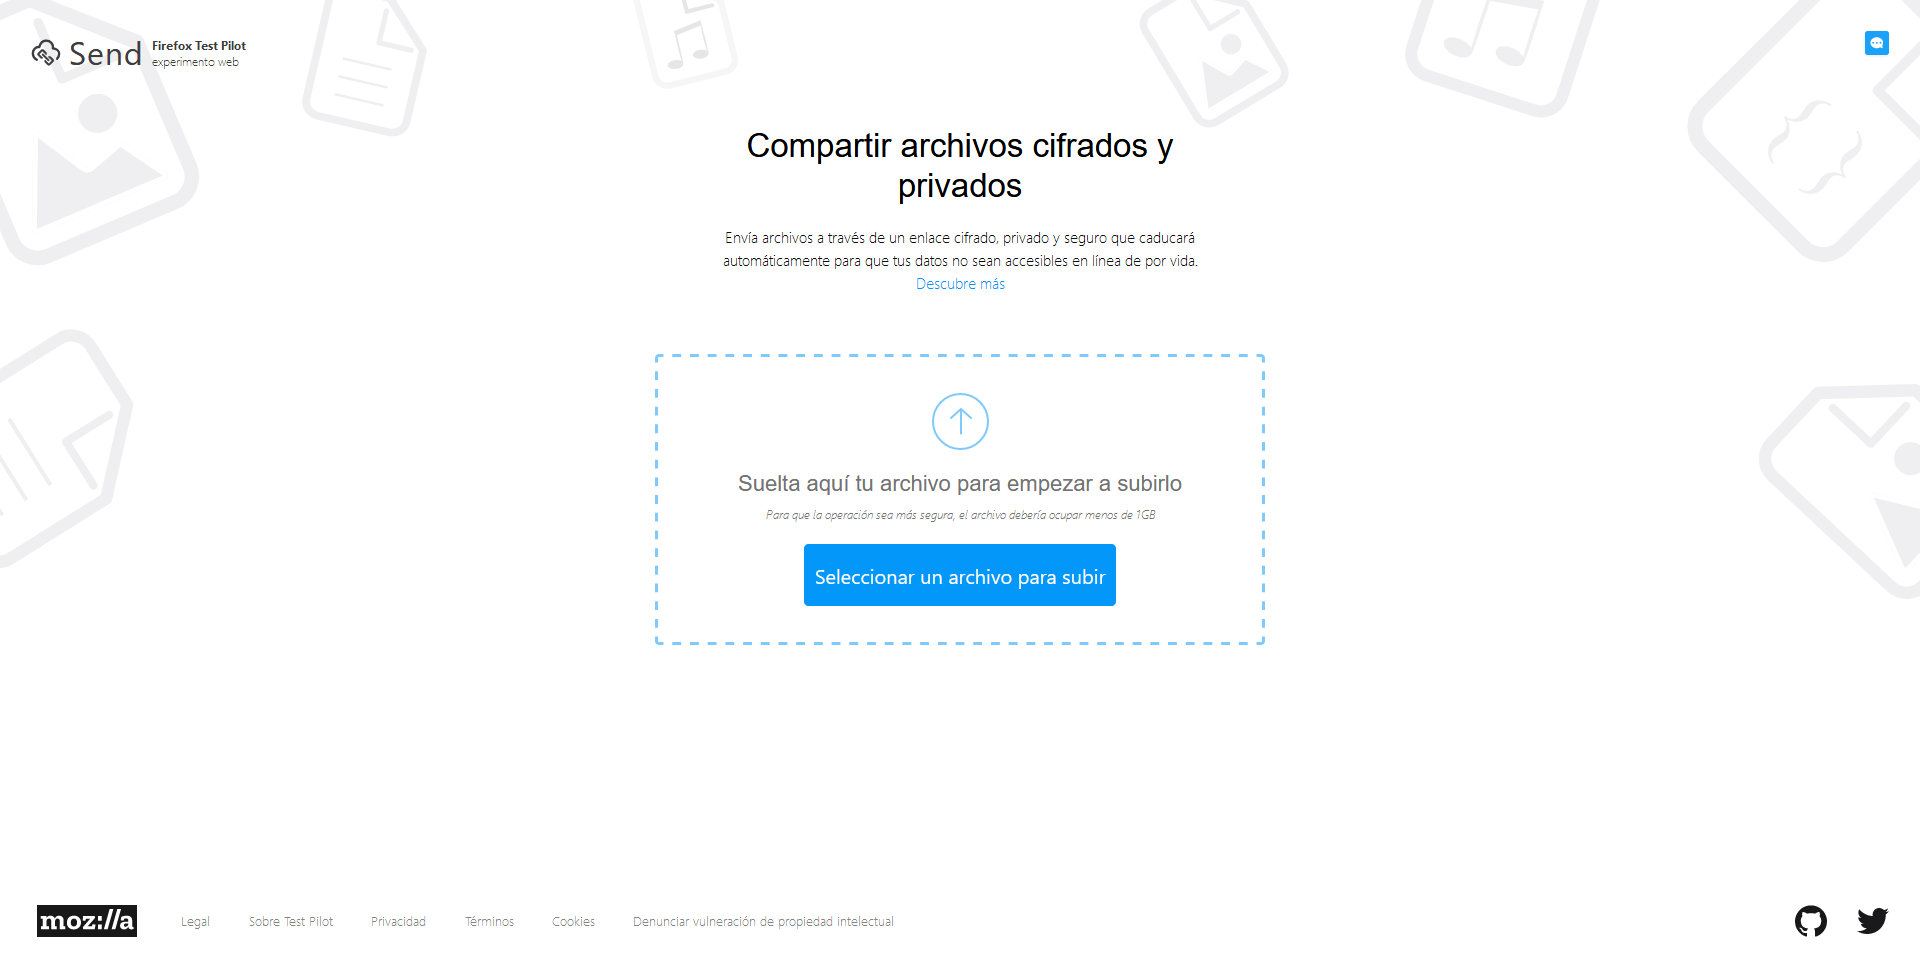 Is Send French? Or Spanish? · Issue #3866 · mozilla